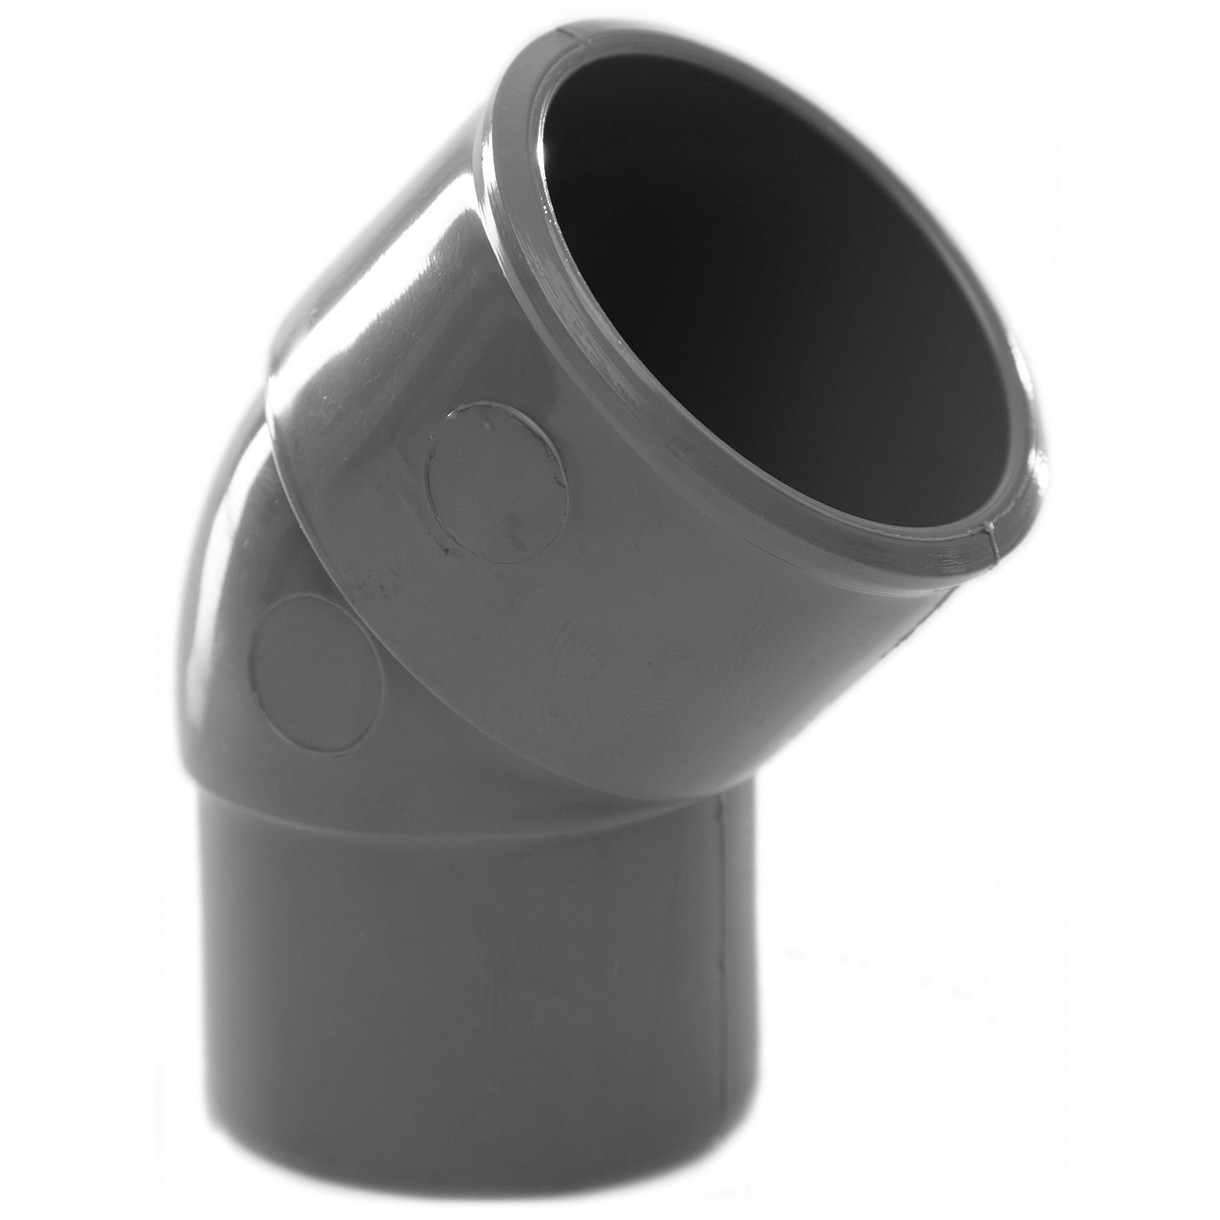 Polypipe 32mm Solvent Weld Waste 45 Degree Spigot Bend - Grey